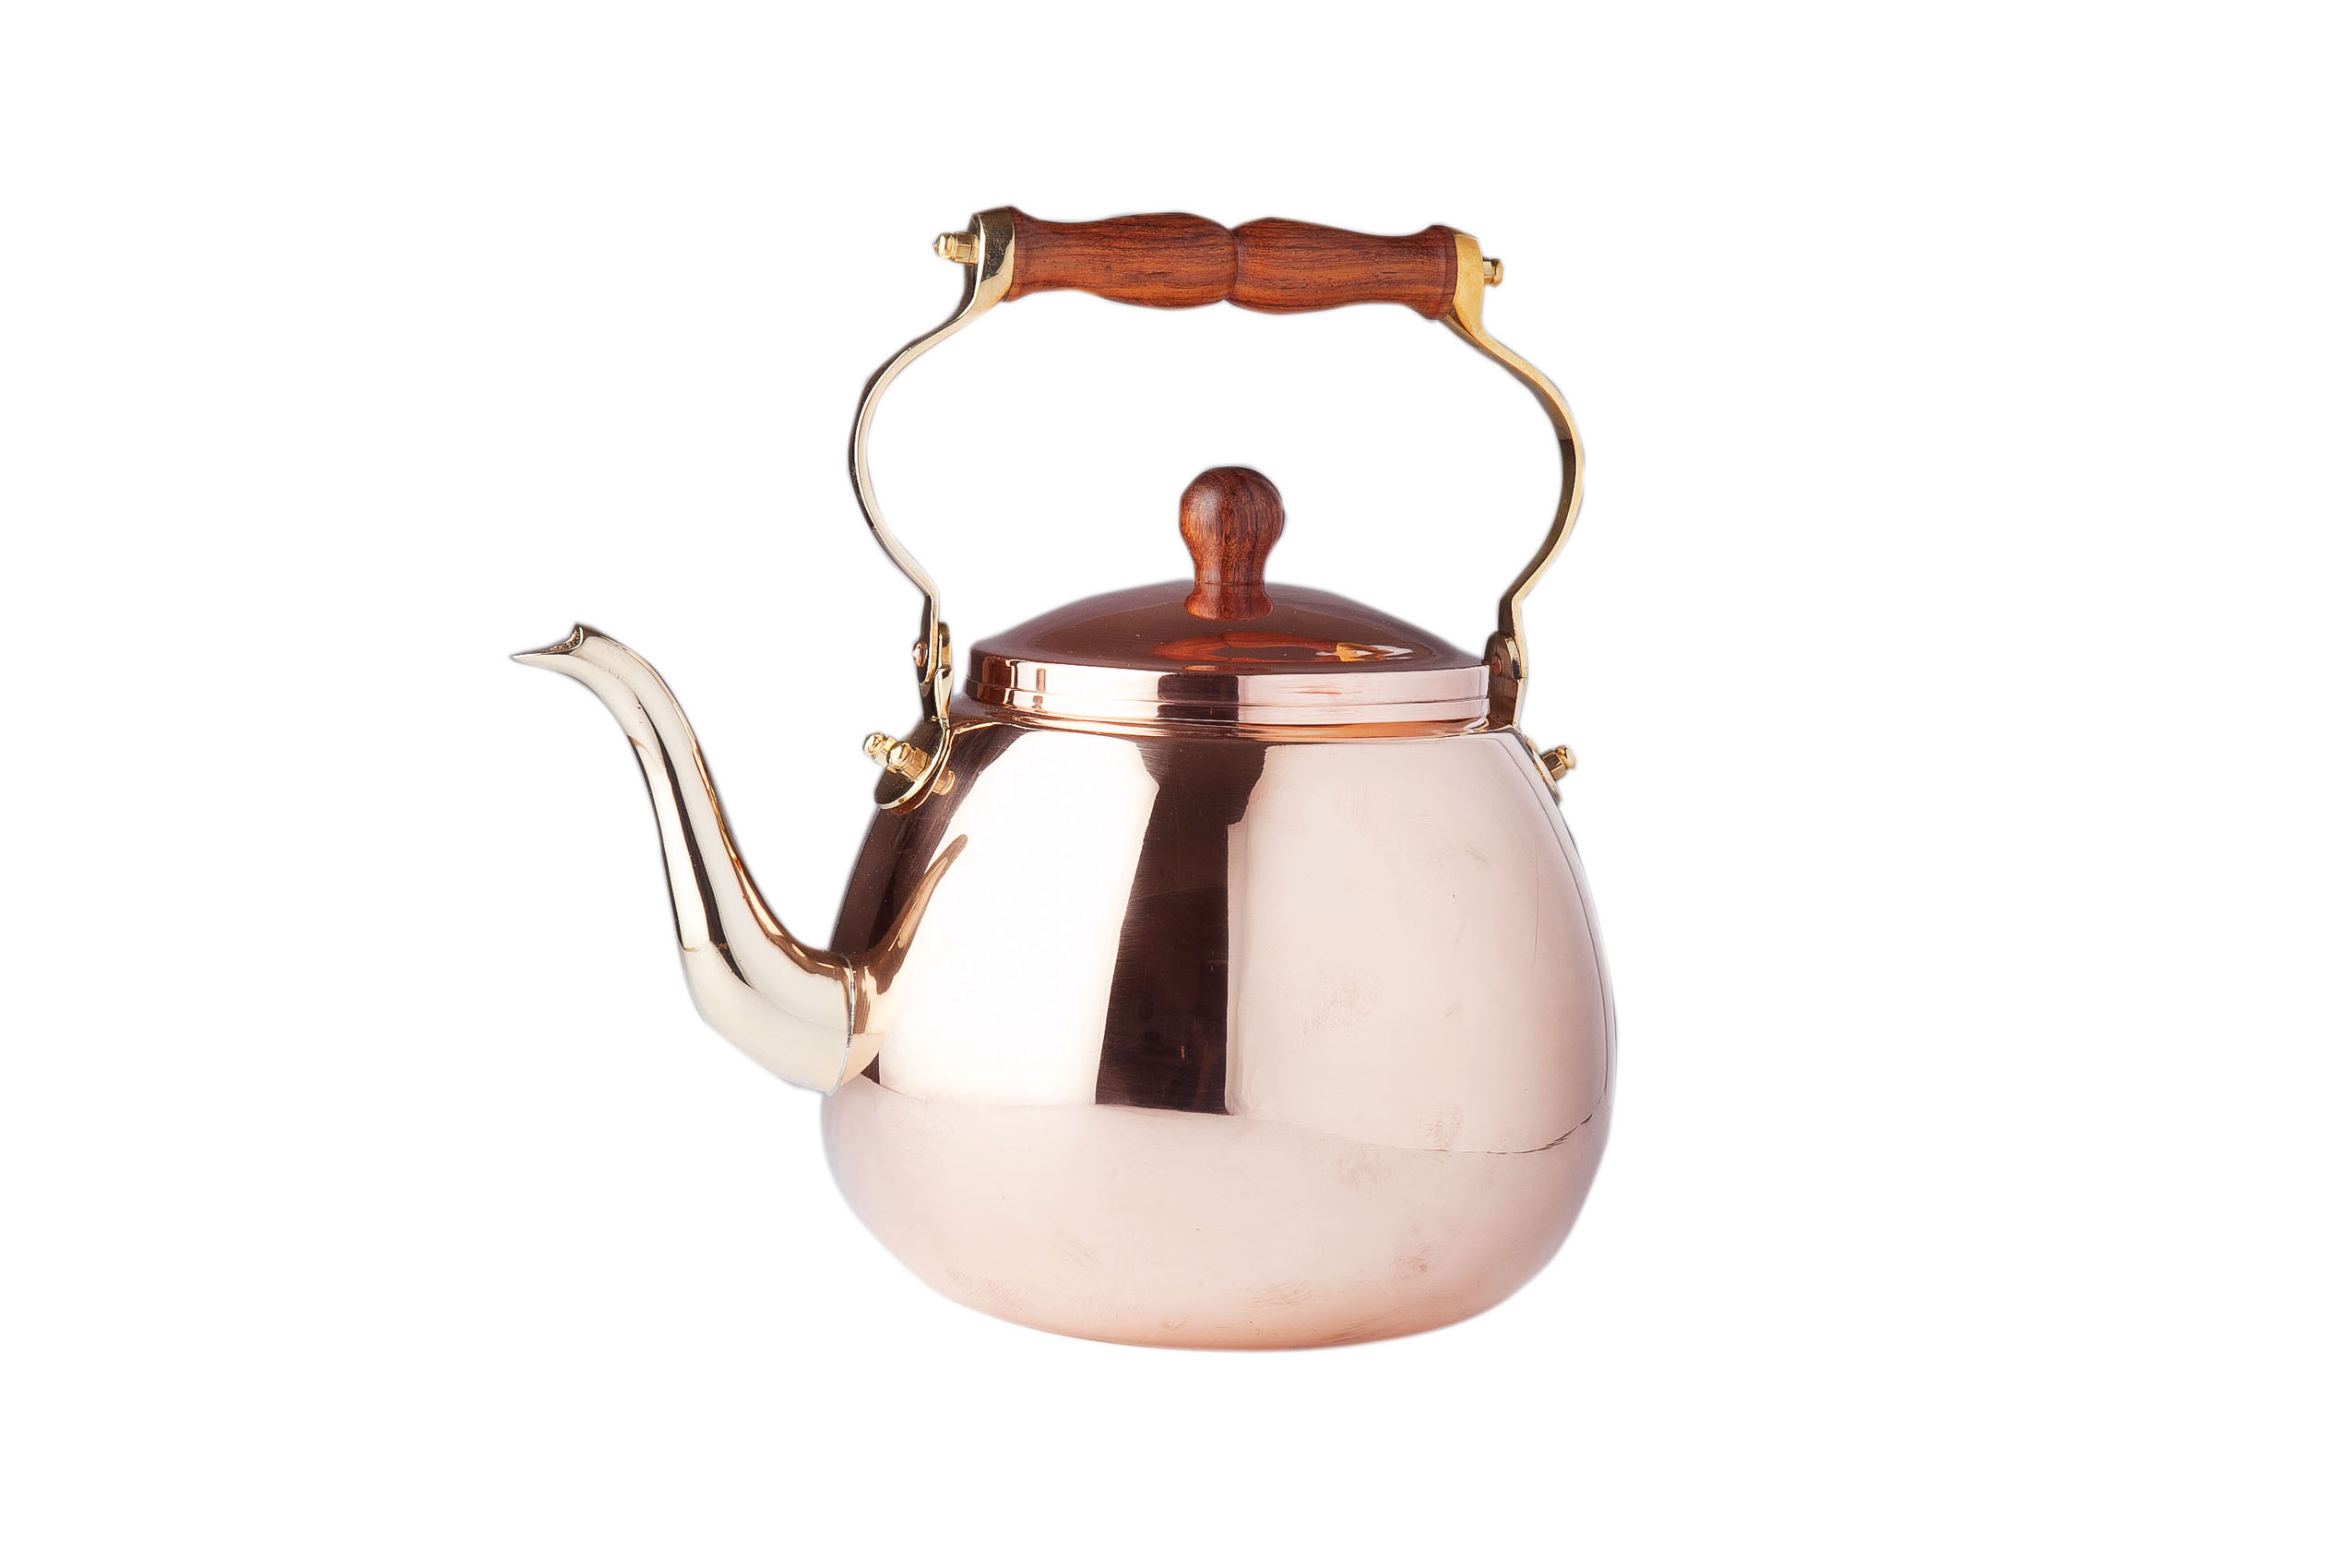 Dutch International Solid Copper Tea Kettle With Wood